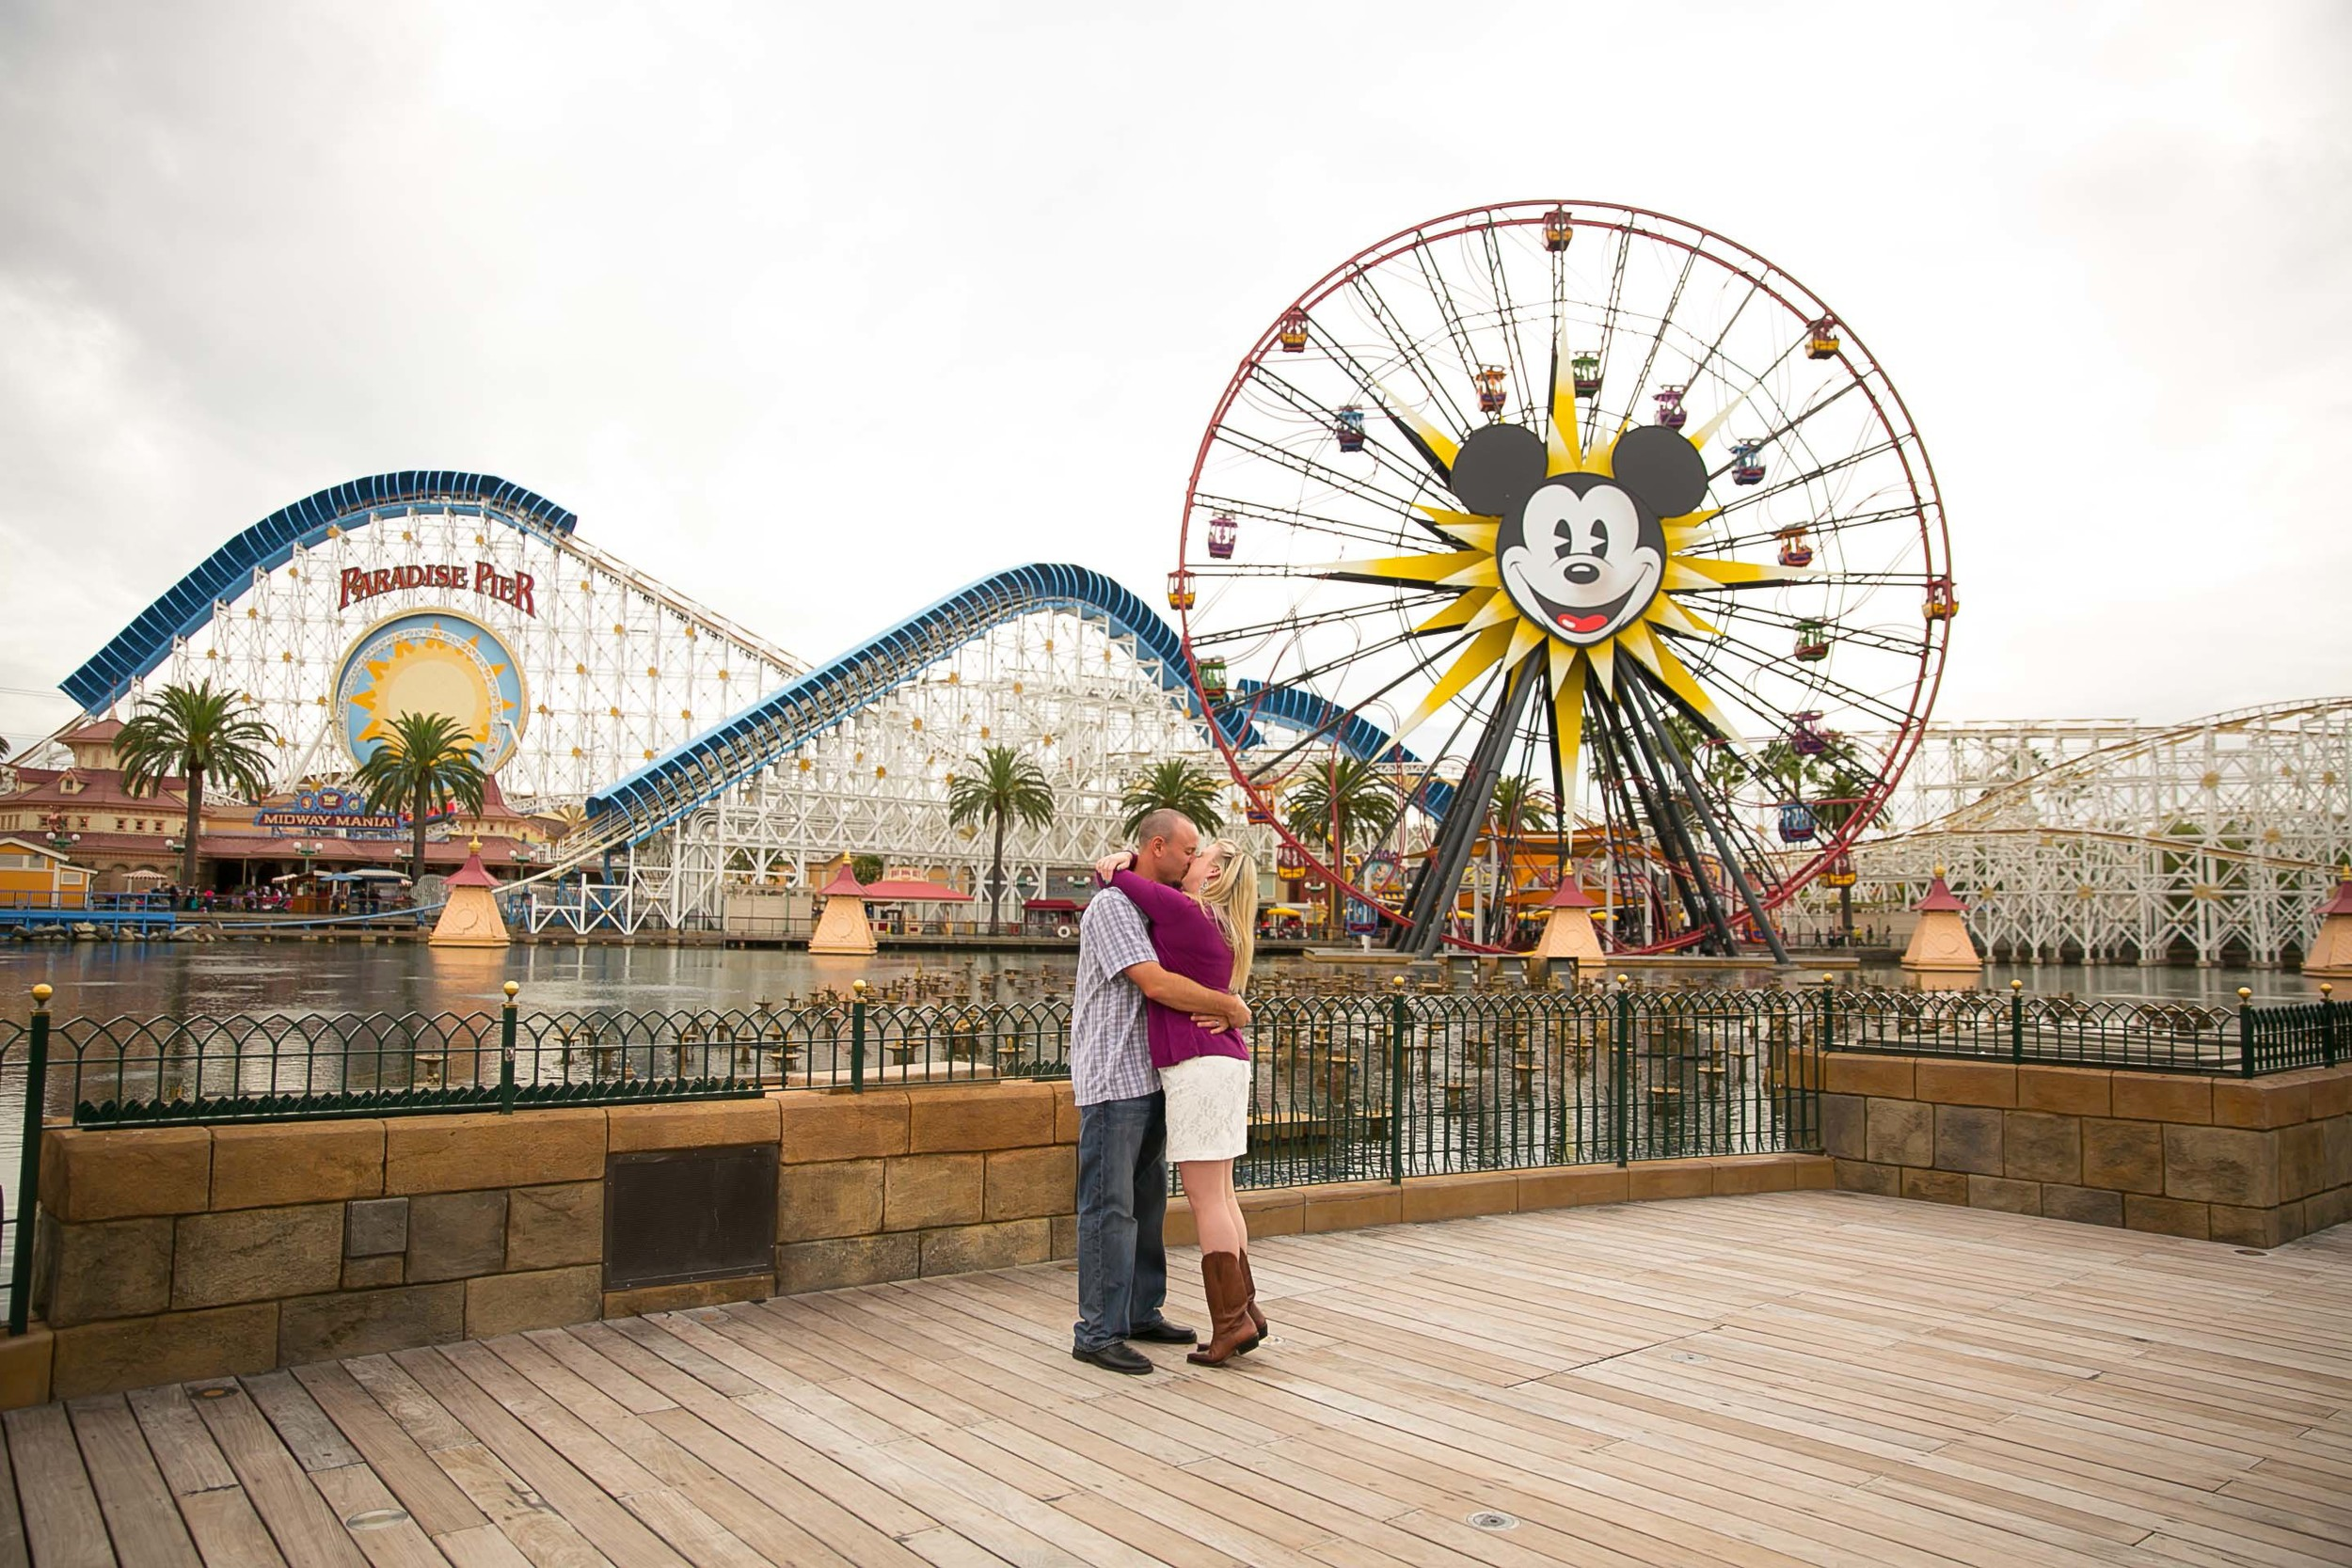 disneyland, california adventure, mickey mouse, ferris wheel, paradise pier, honeymoon, engagement, love, happy, happiest place on earth, los angeles wedding photography, chris holt photography